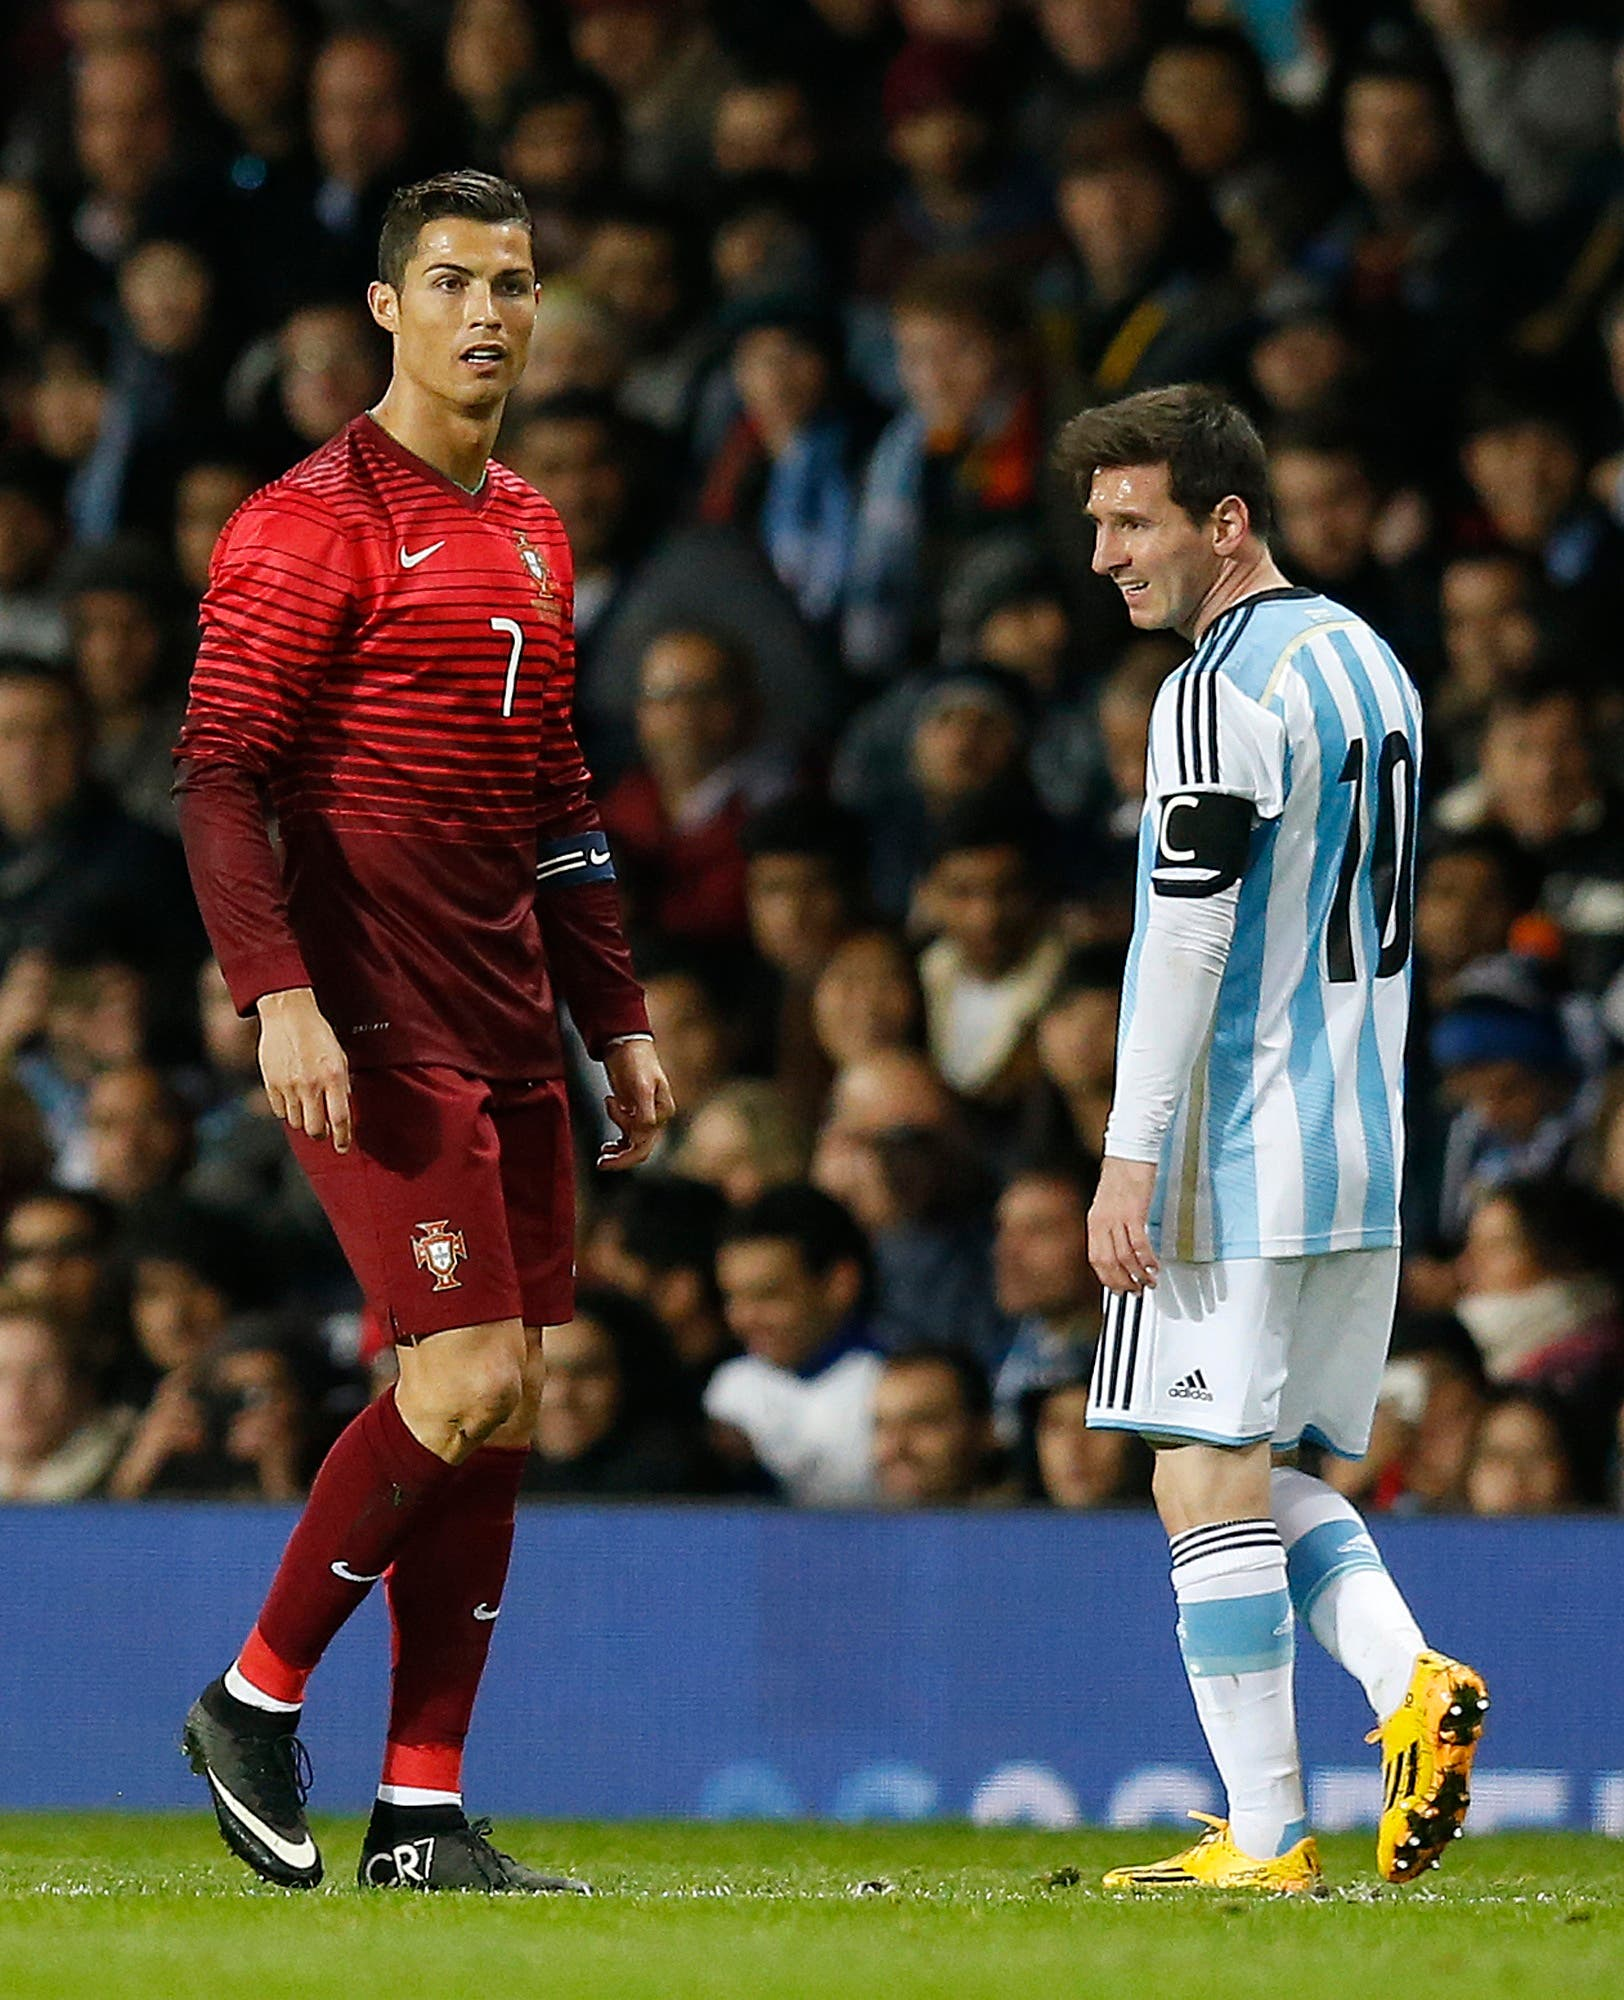 Cristiano Ronaldo of Portugal, left, and Lionel Messi of Argentina stand next to each other during their International Friendly soccer match at Old Trafford Stadium, Manchester, England, Tuesday Nov. 18, 2014. (AP)